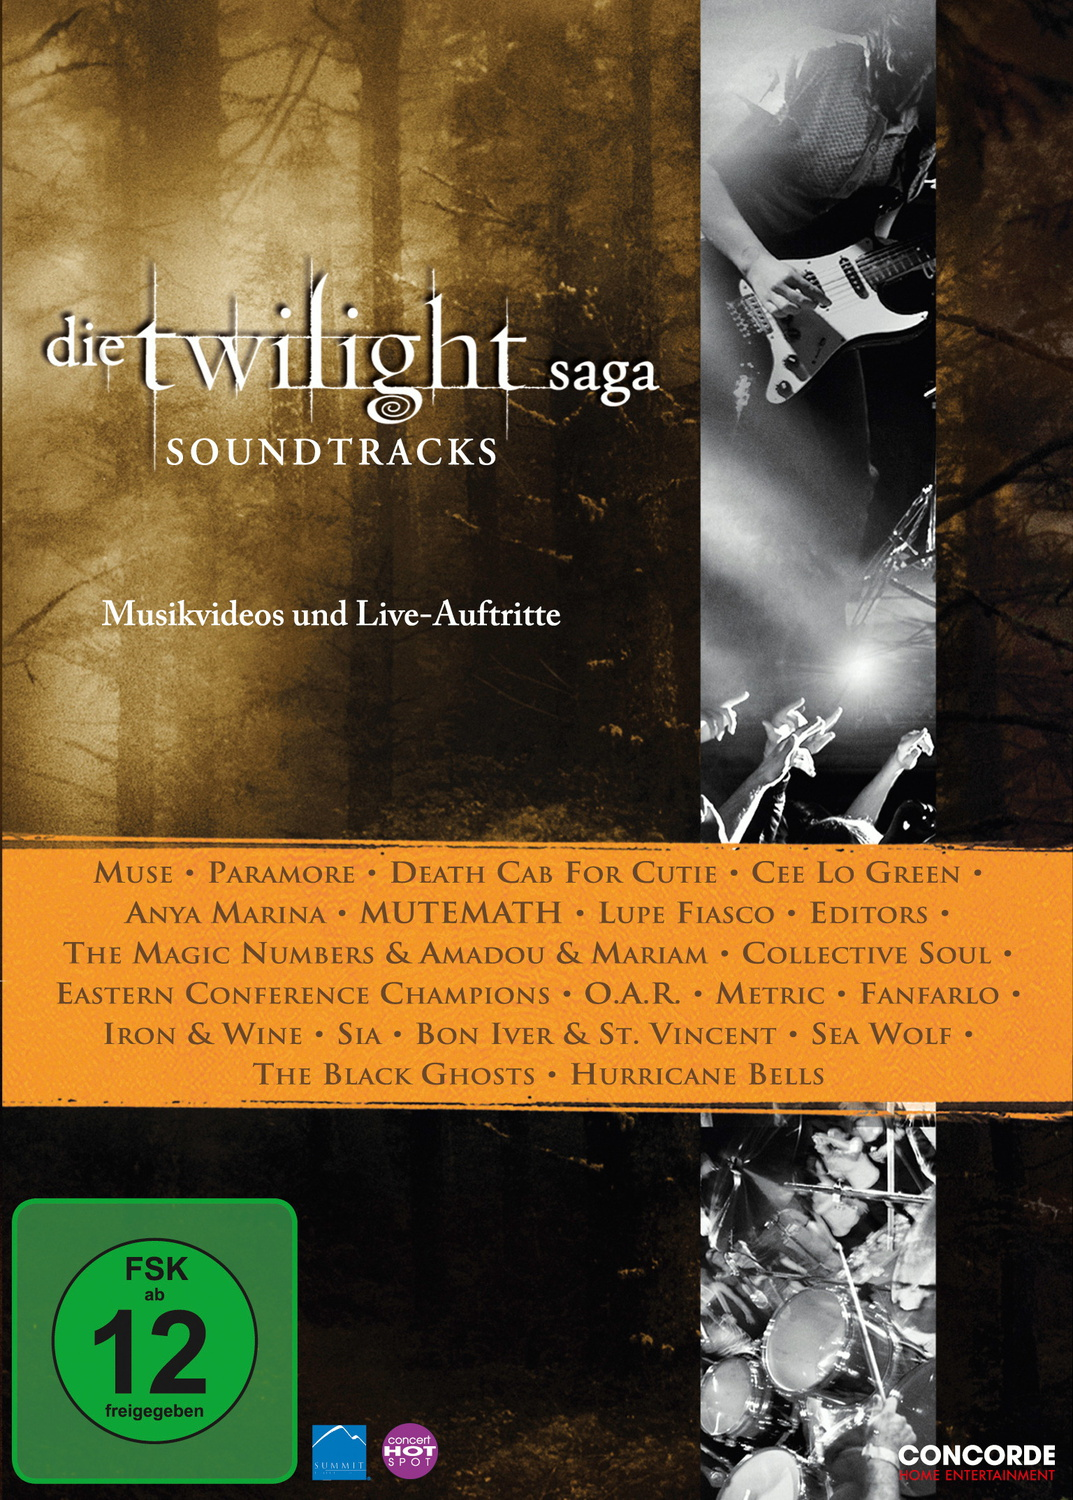 Die Twilight Saga Soundtracks [Musikvideos und ...